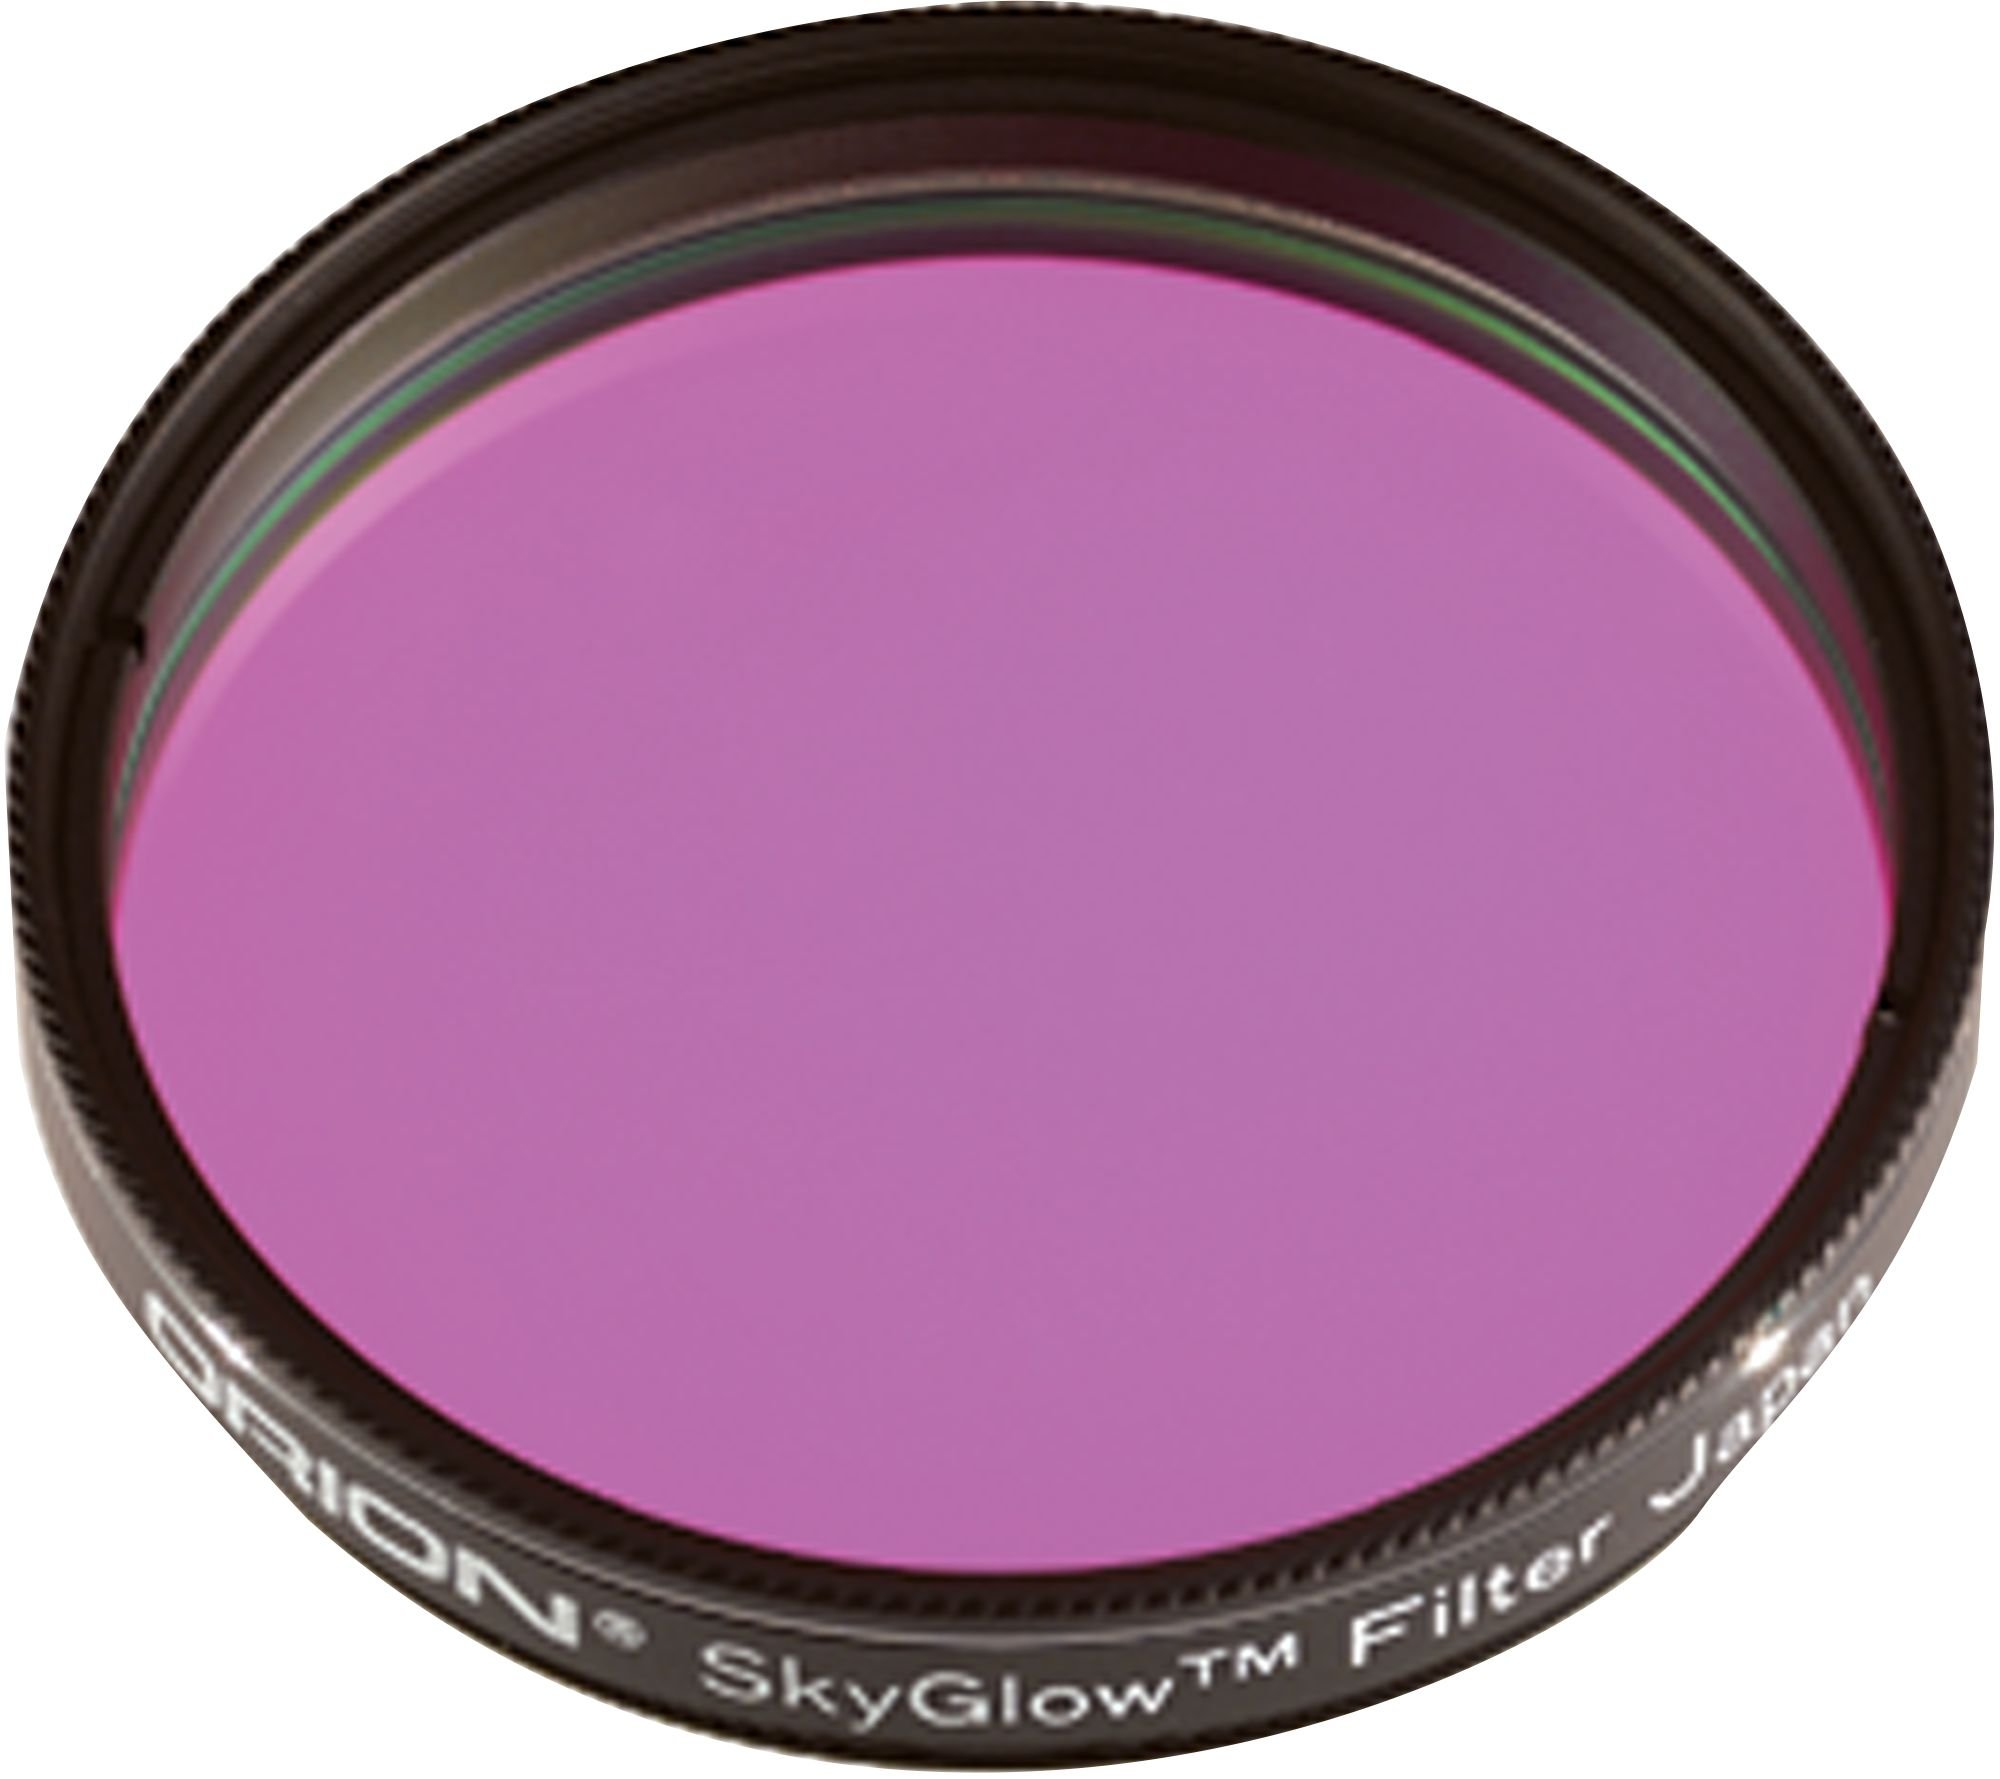 Orion 5659 2-Inch SkyGlow Broadband Eyepiece Filter by Orion